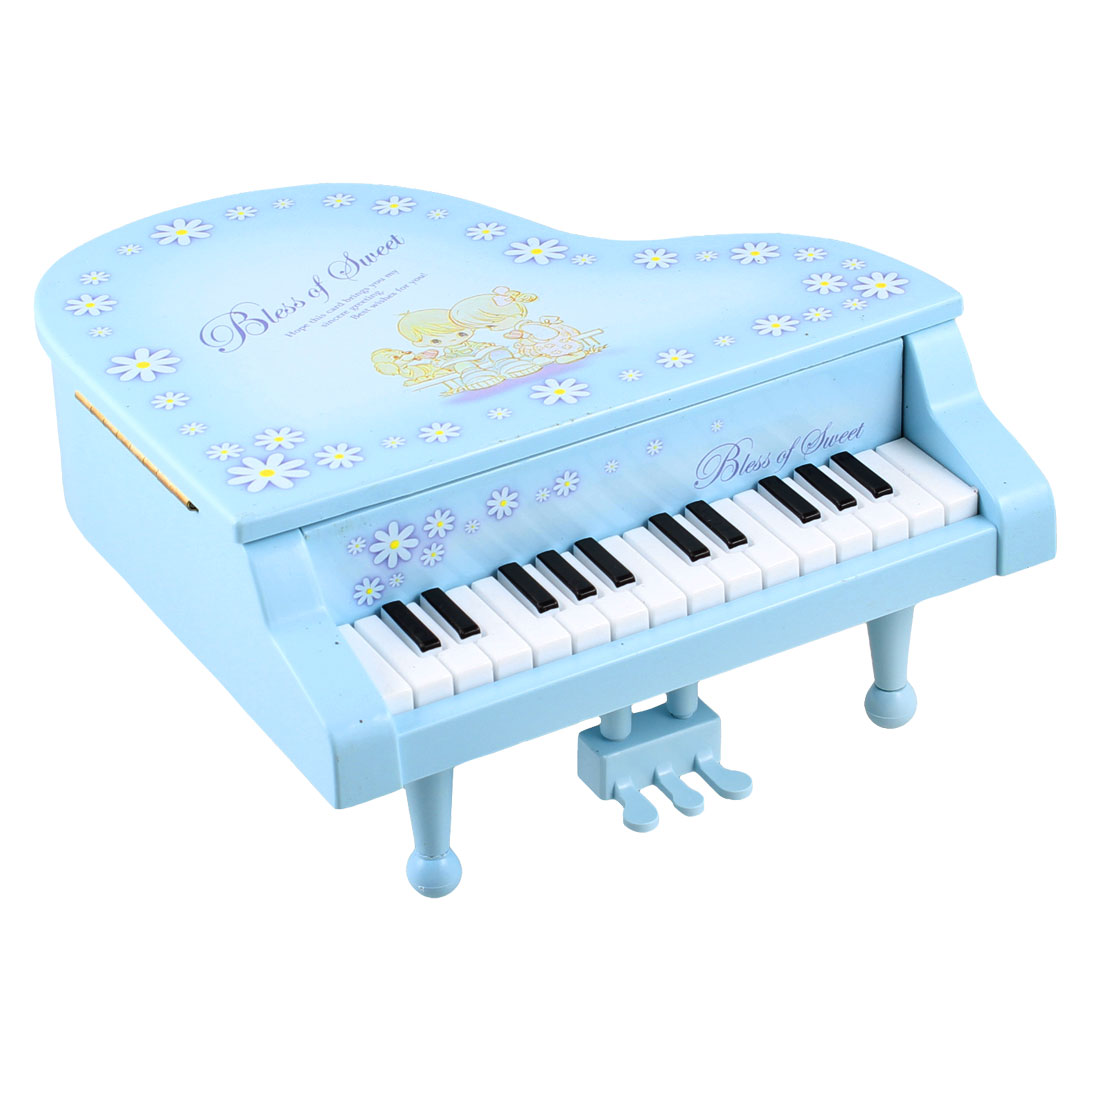 Plastic Interest Developing Piano Music Box Mini Model Gift Blue